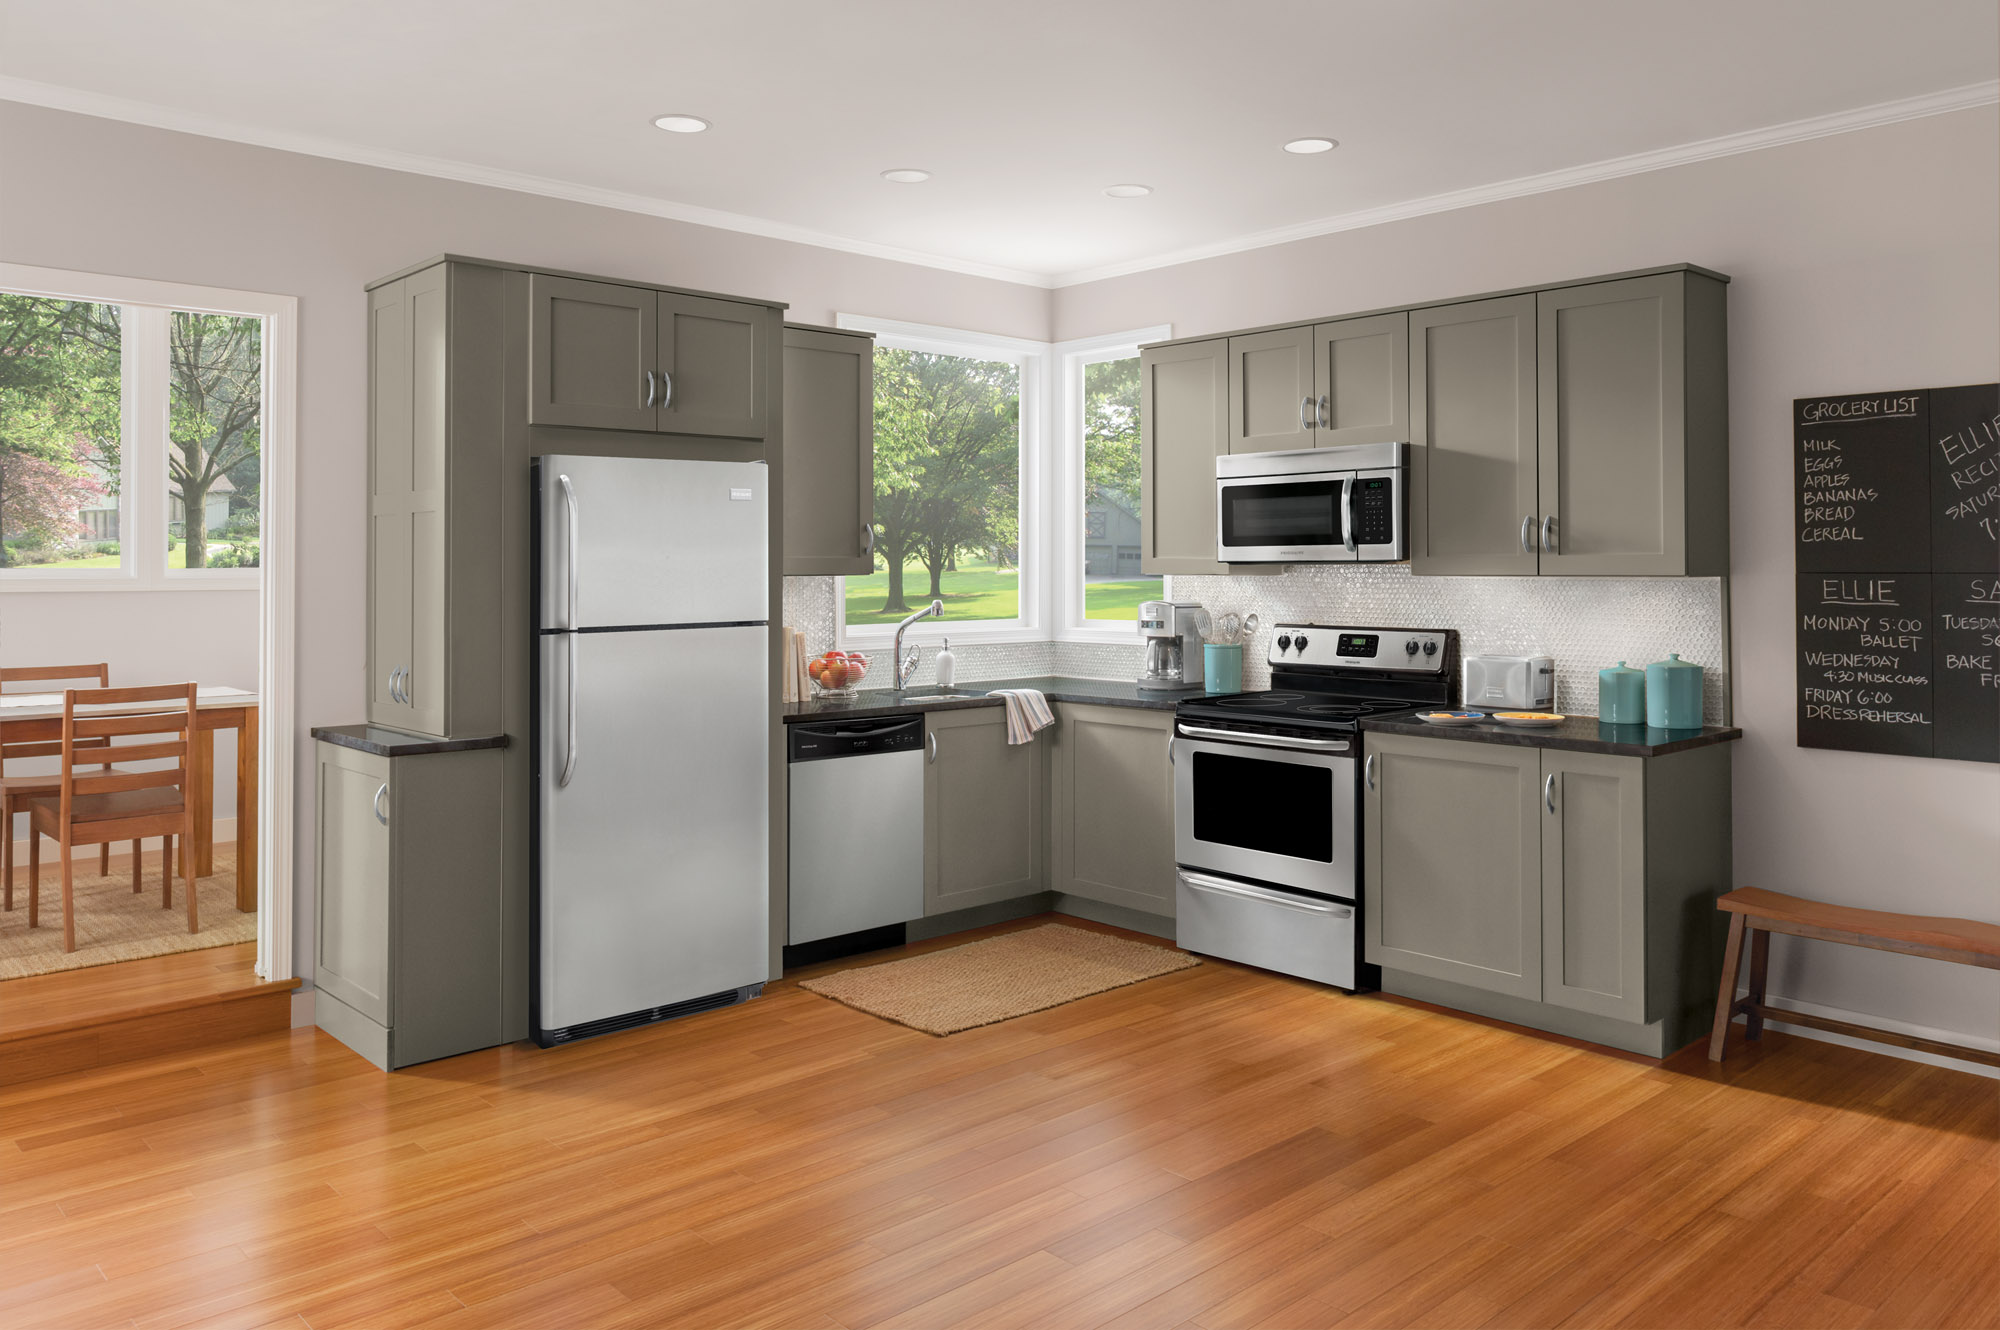 Kitchen appliances kitchen appliance package deals for Kitchen and home